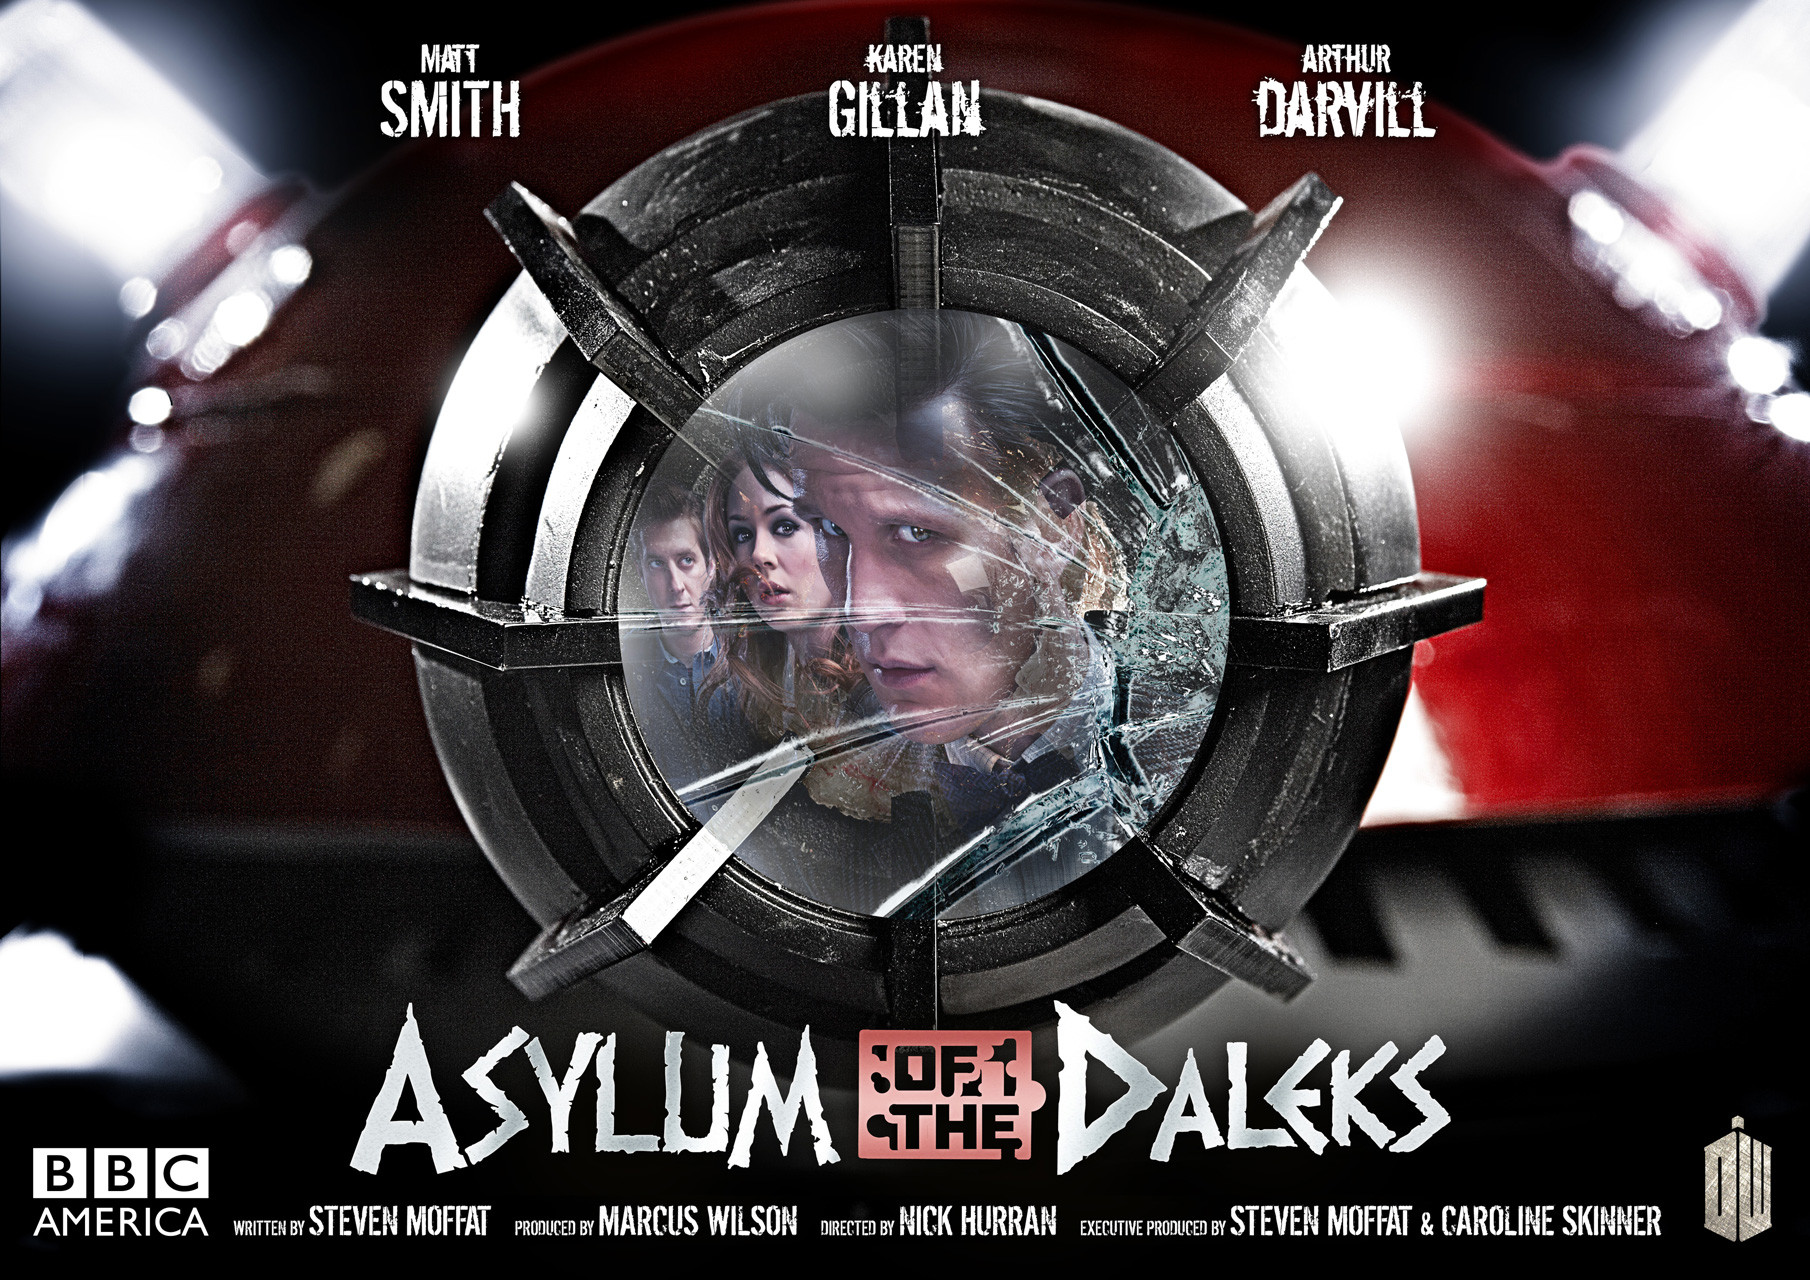 Asylum-of-the-Daleks-poster-doctor-who-31819810-1810-1280.jpg